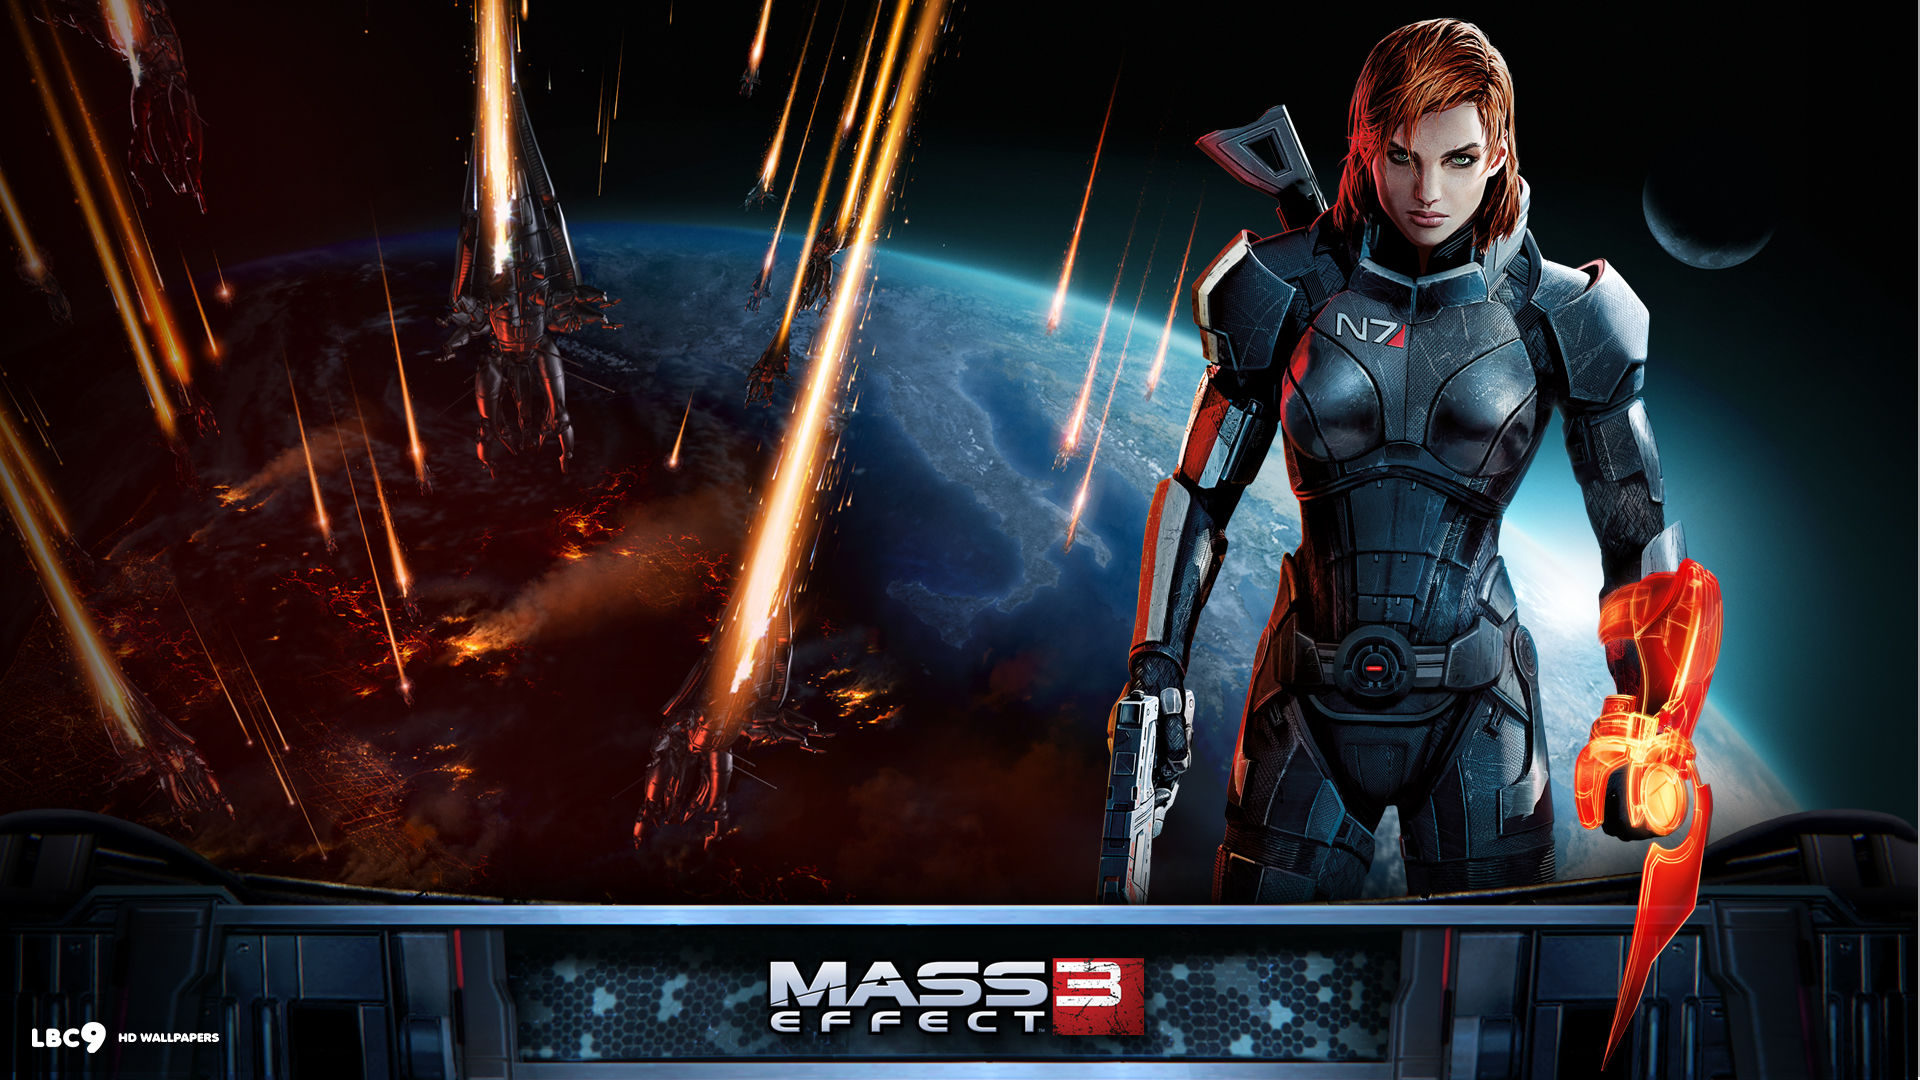 Mass Effect HD Wallpapers and Backgrounds 1920x1080